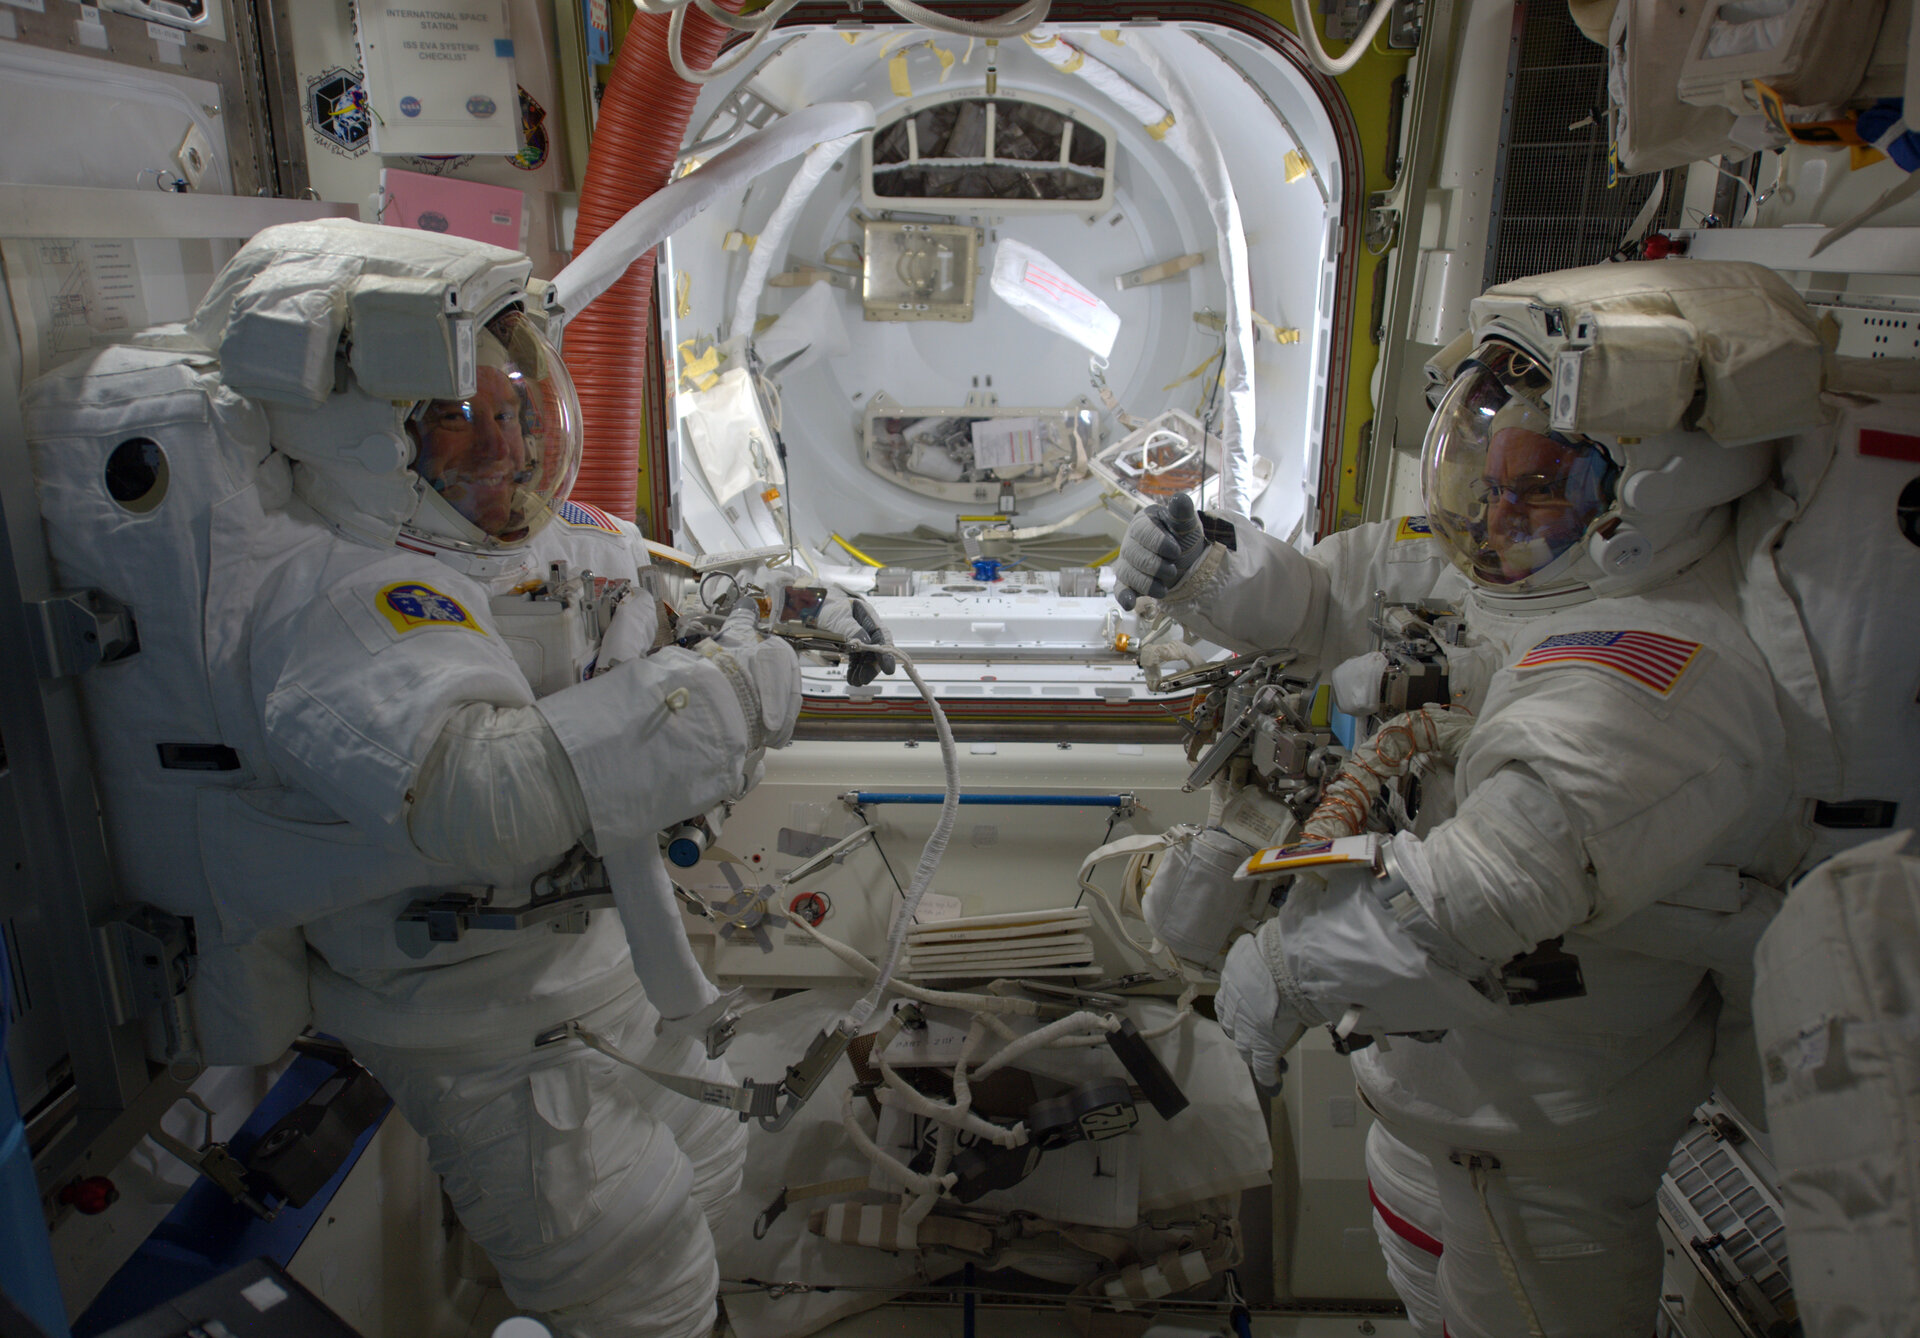 Preparing for spacewalk